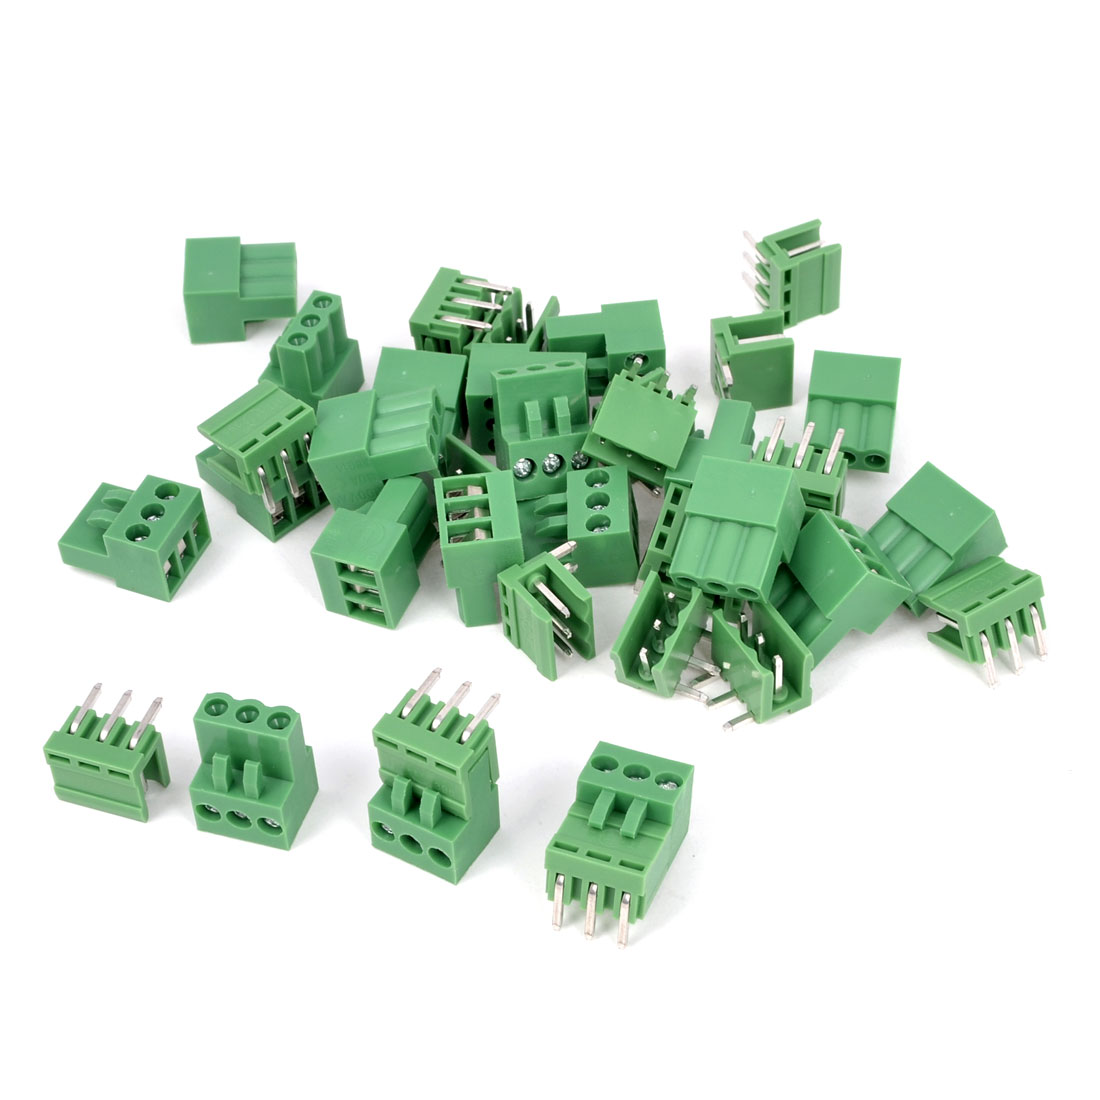 20Pcs AC 300V 10A 3P Poles PCB Screw Terminal Block Connector 3.96mm Pitch Green